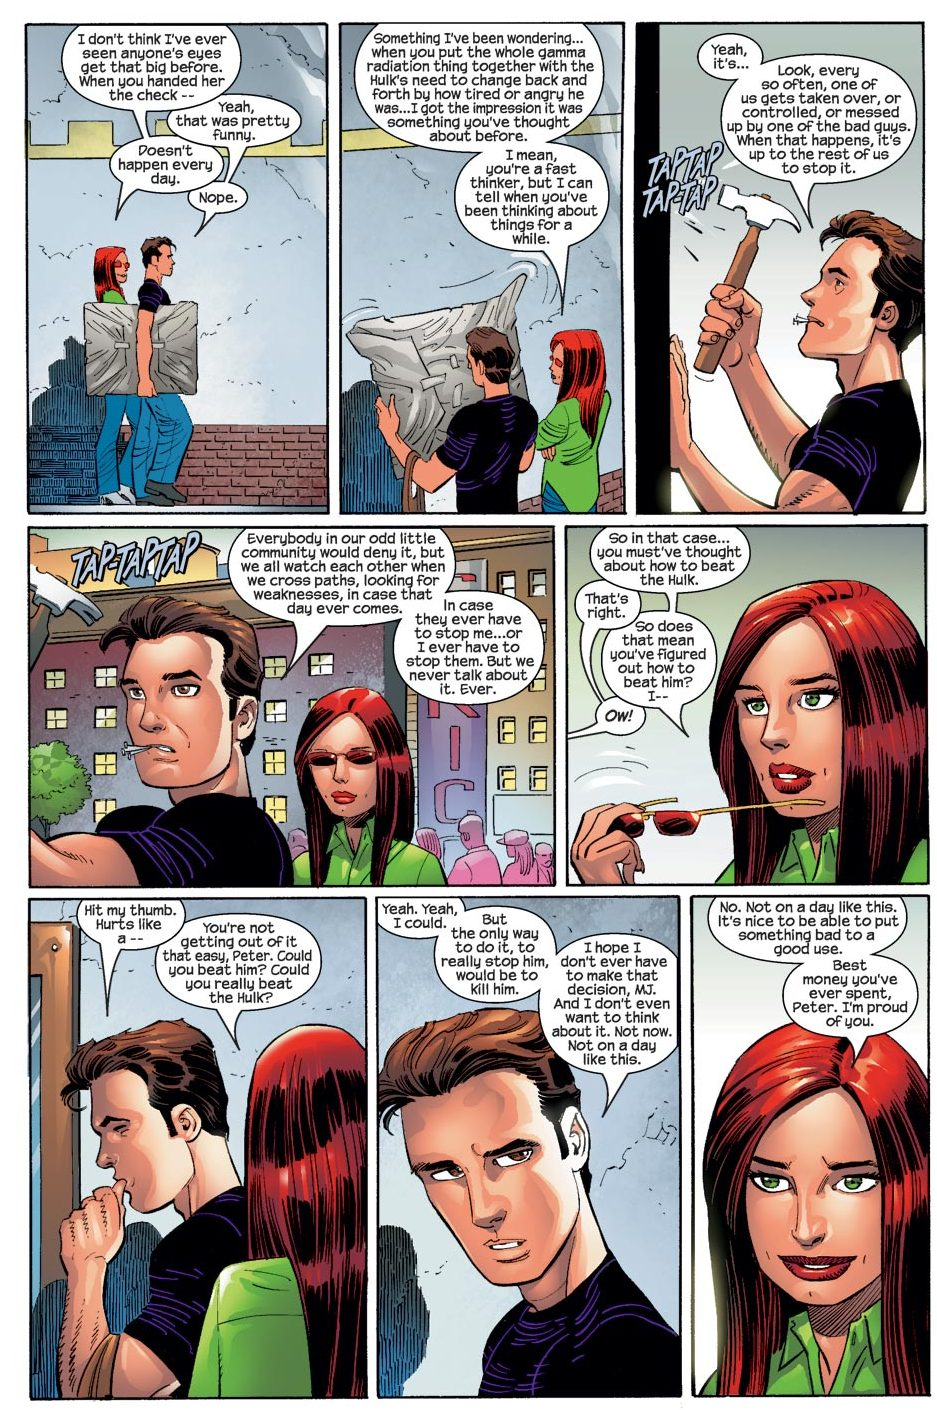 From – The Amazing Spider-Man Vol. 2 #54